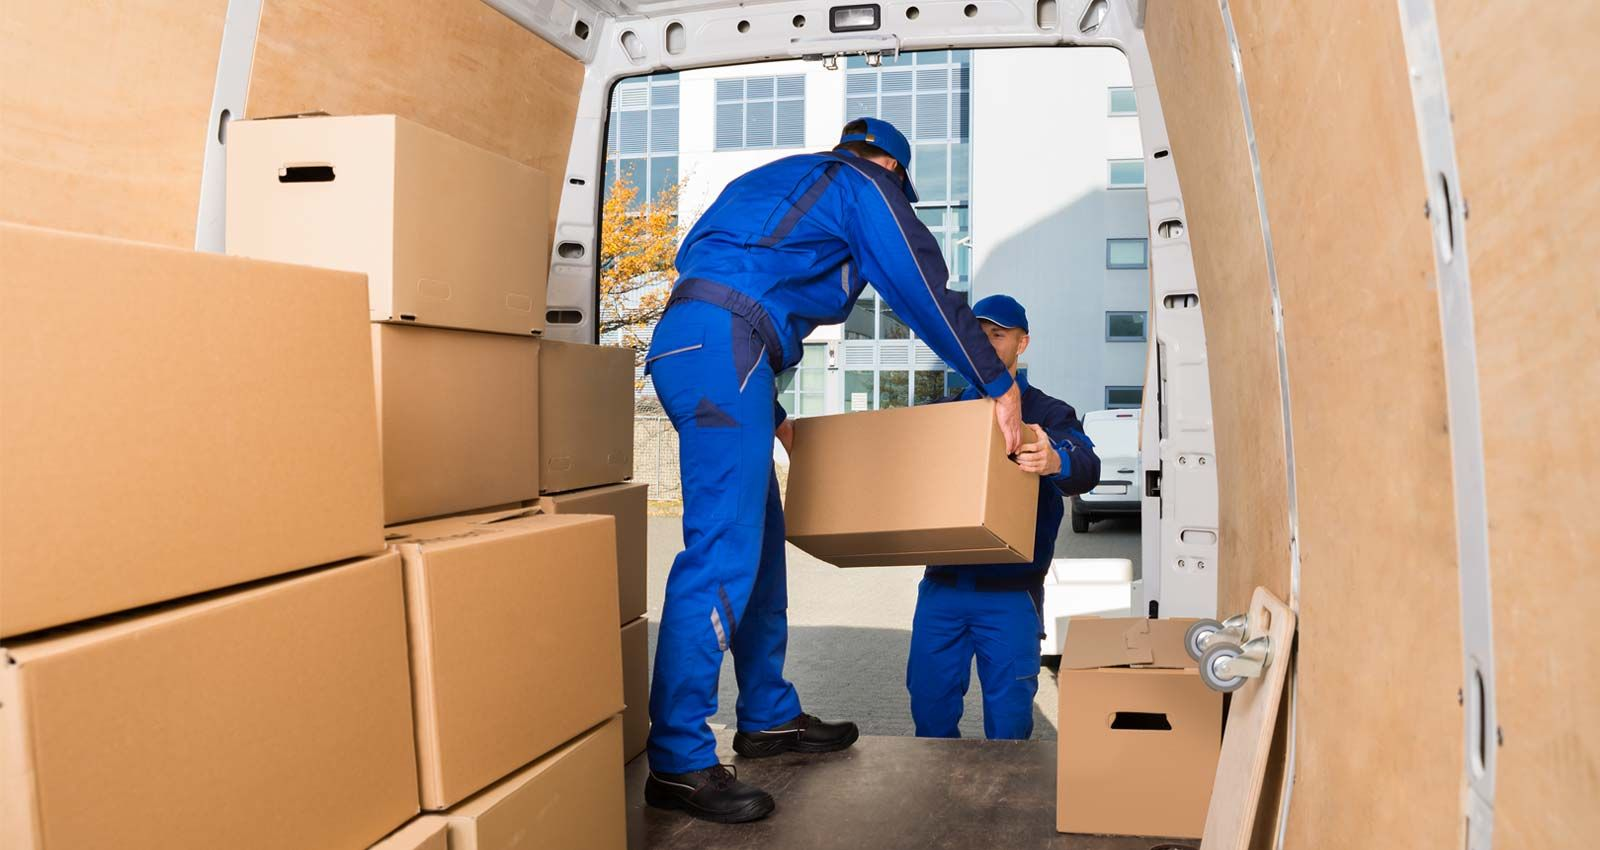 Moving help jobs